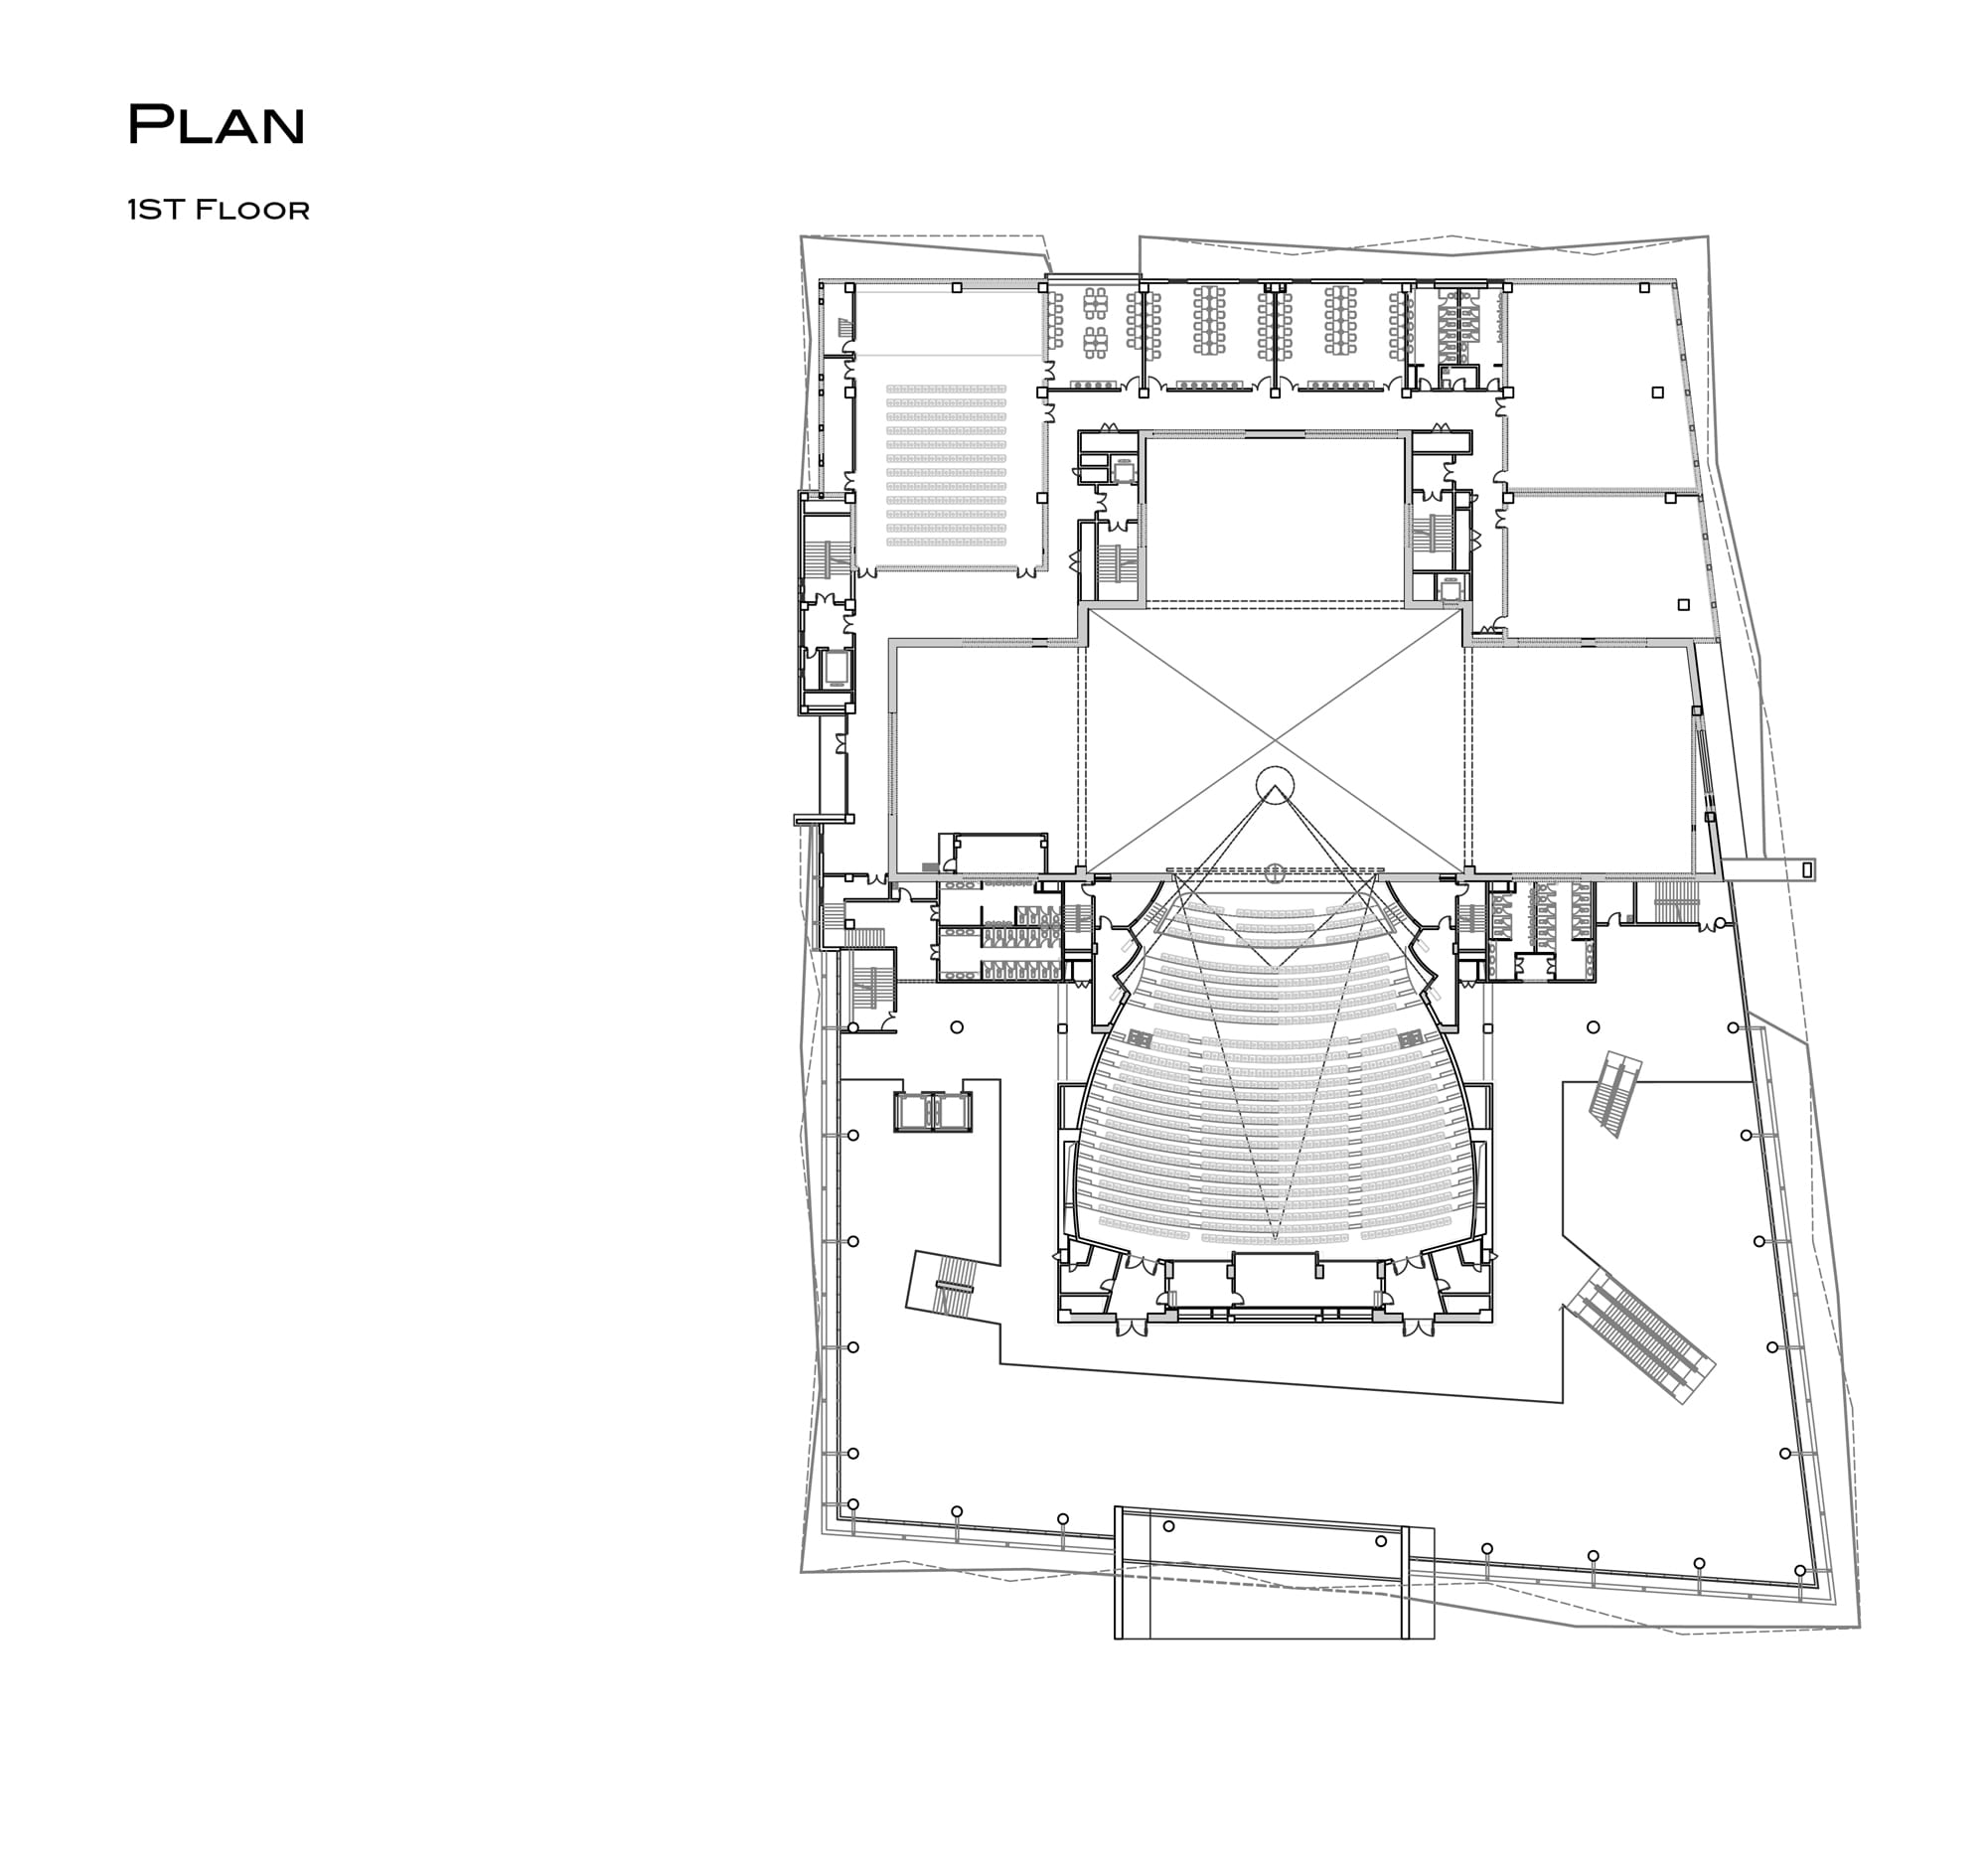 52eb01afe8e44e981a000092 Princess Alexandra Auditorium Associated Architects Llp Floor Plan Details in addition Onyx Brass Velvet Concrete Studio Hermes Corvin Cristian further Preliminary Section Of Main Cinema likewise 262883 Dushe Architectural Design Bayuquan Poly Theater also 20170927152303 tv Lowboard Av Receiver. on acoustic theater design